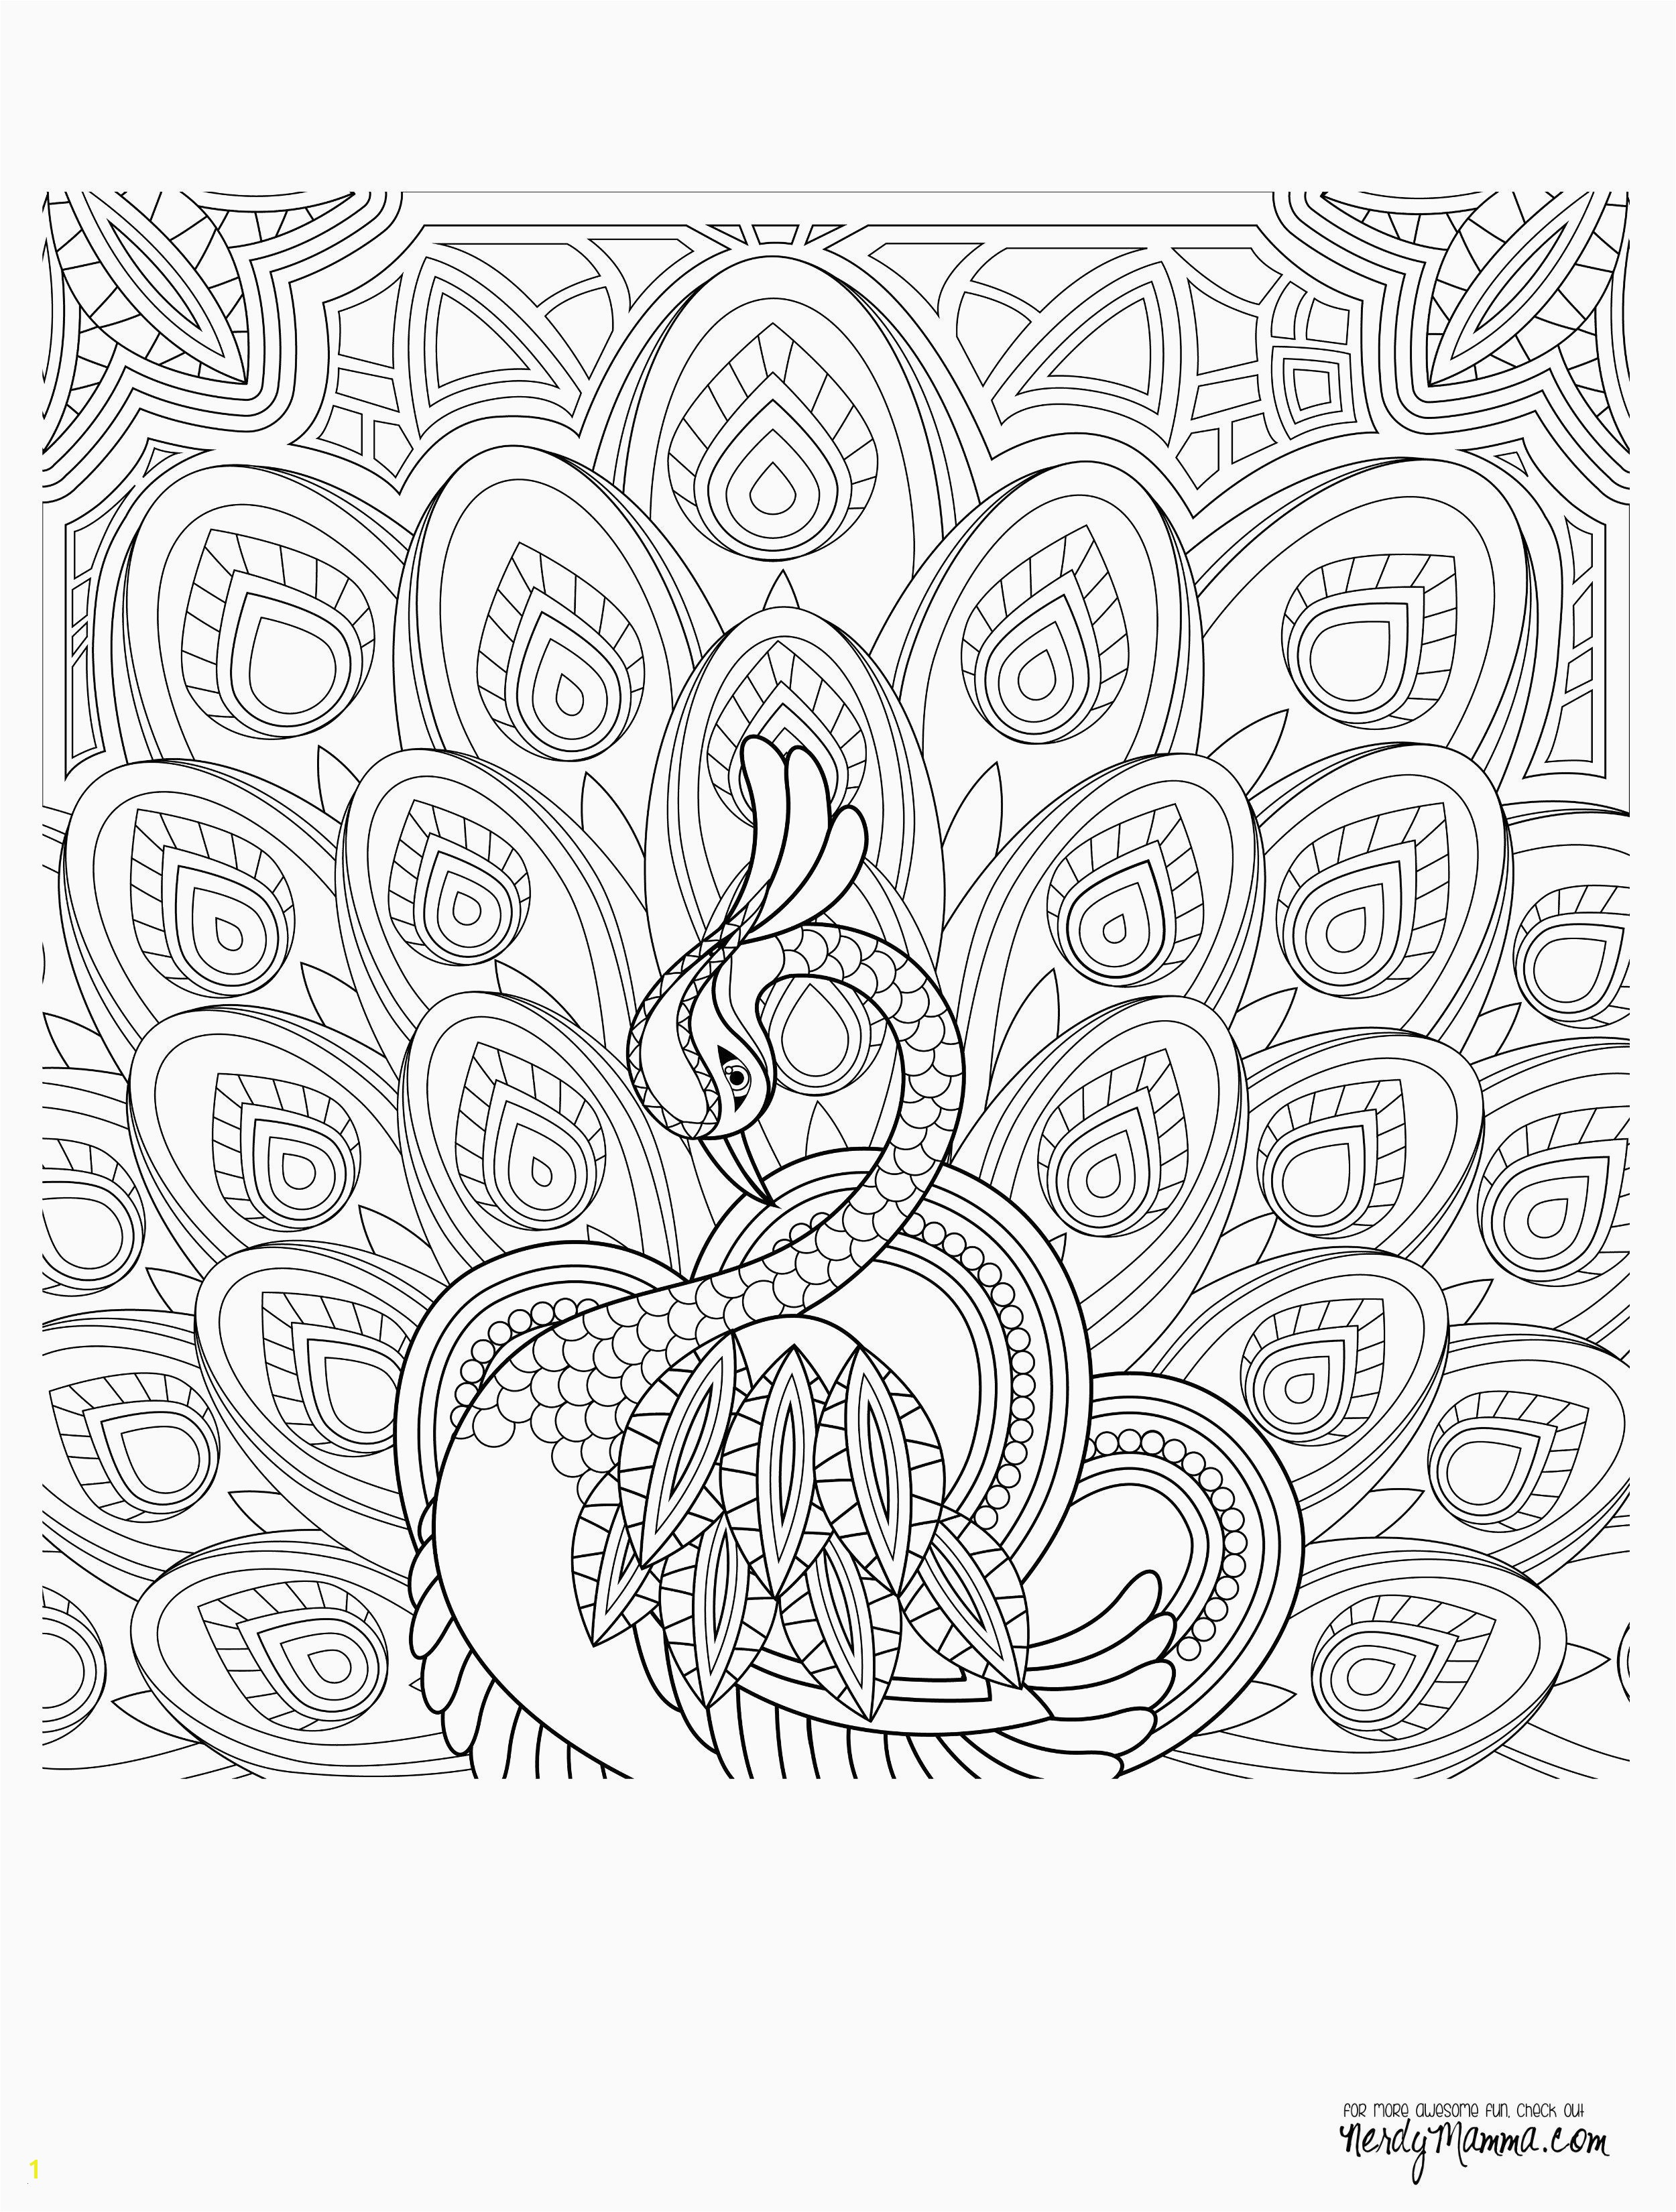 Easter Coloring Pages for Adults Unique Cute Printable Coloring Pages New Printable Od Dog Coloring Pages